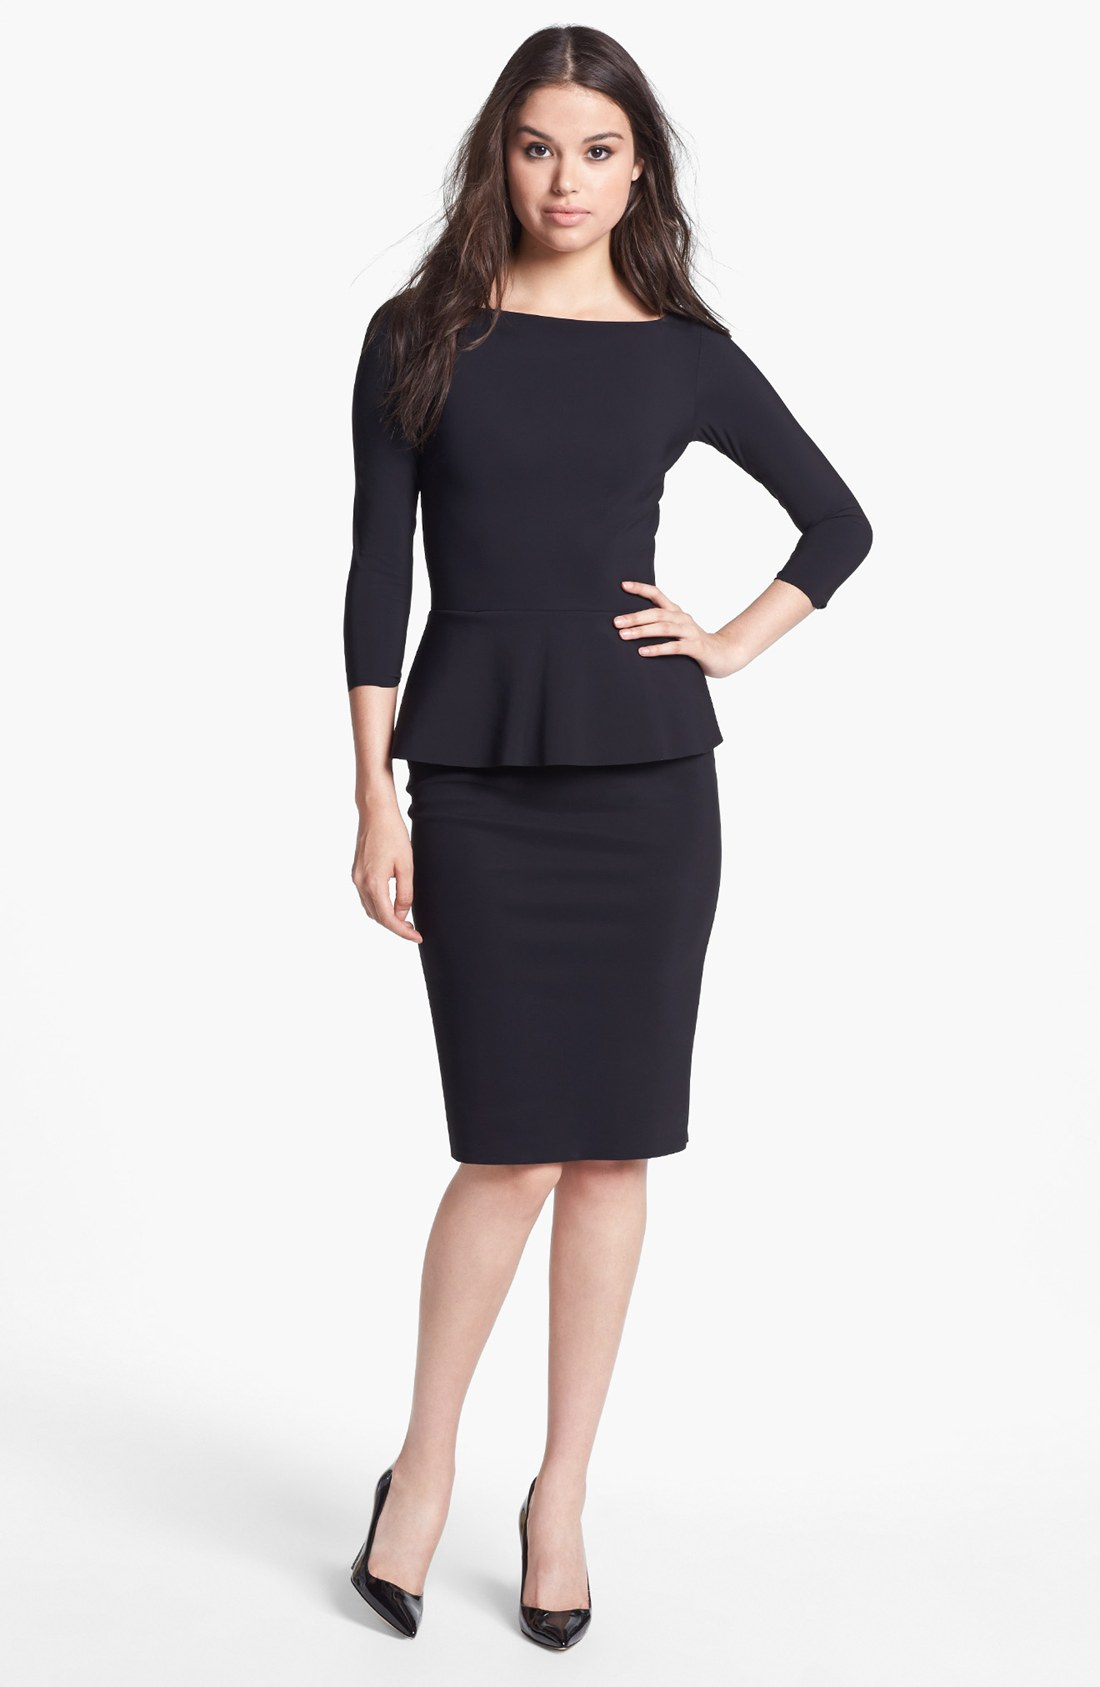 Chiara Boni The Most Popular Dress In America: La Petite Robe Di Chiara Boni Peplum Sheath Dress In Black